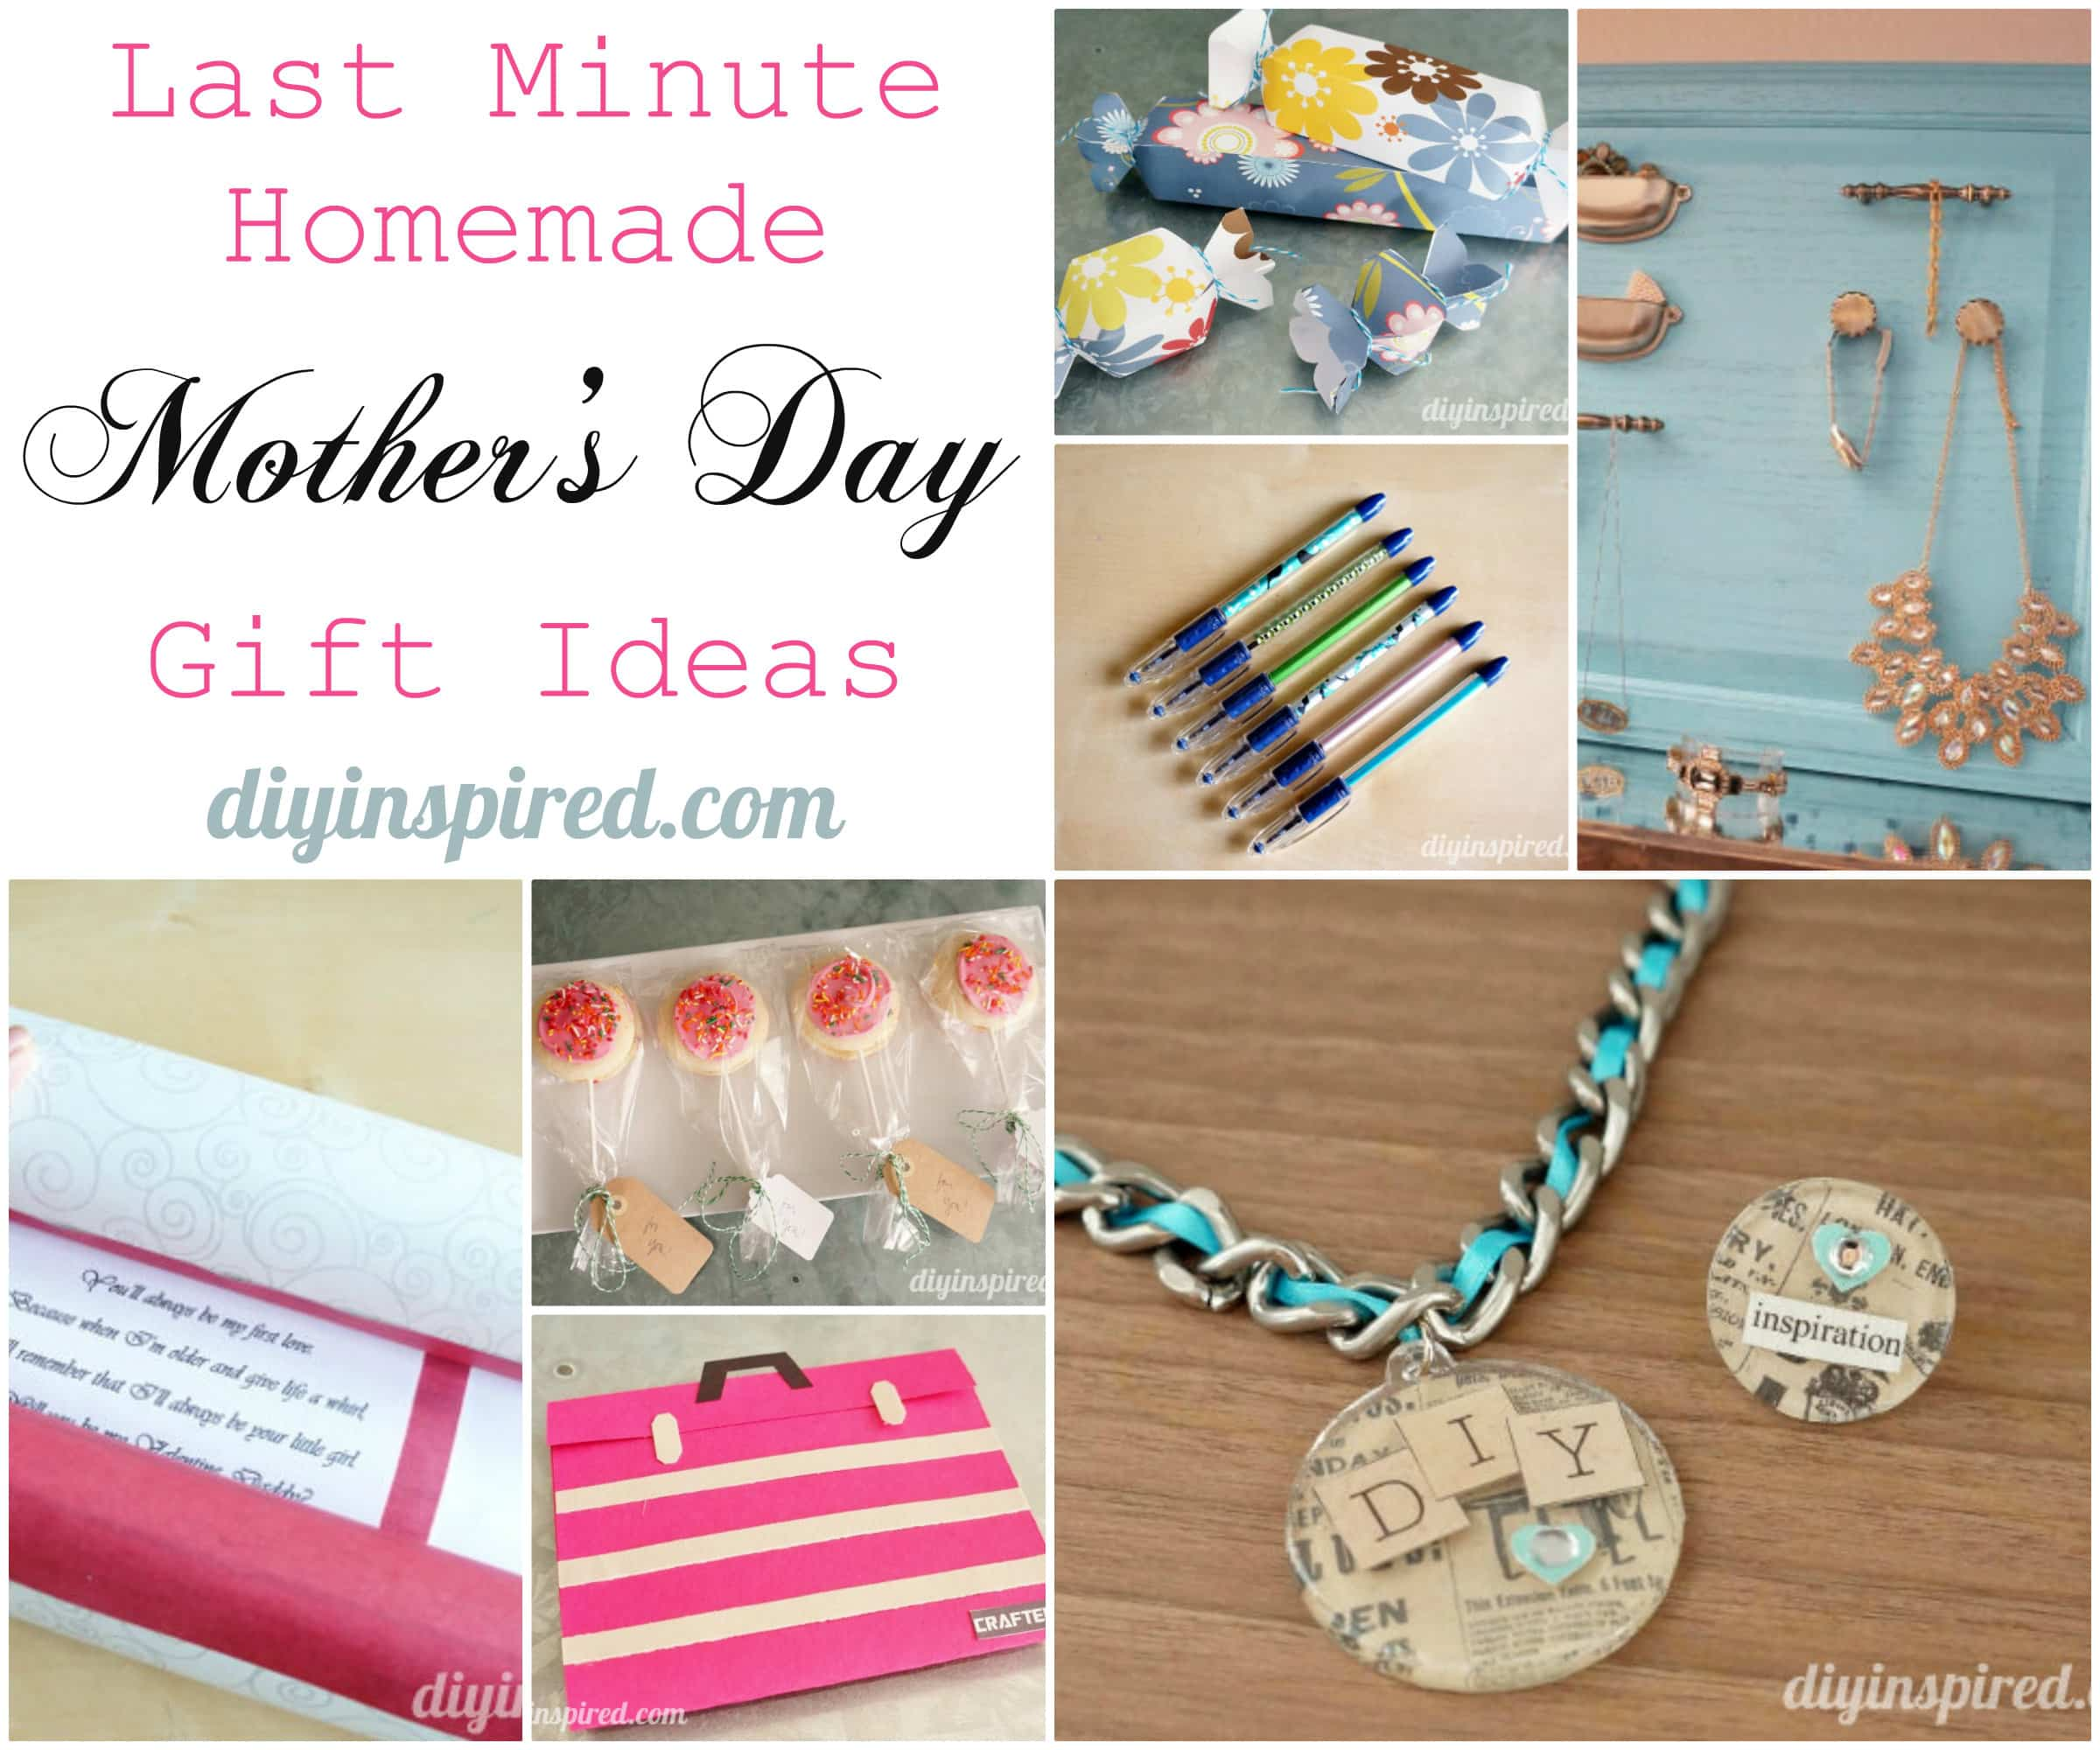 Homemade Christmas Ideas For Mom. 100 great ideas for inexpensive ...